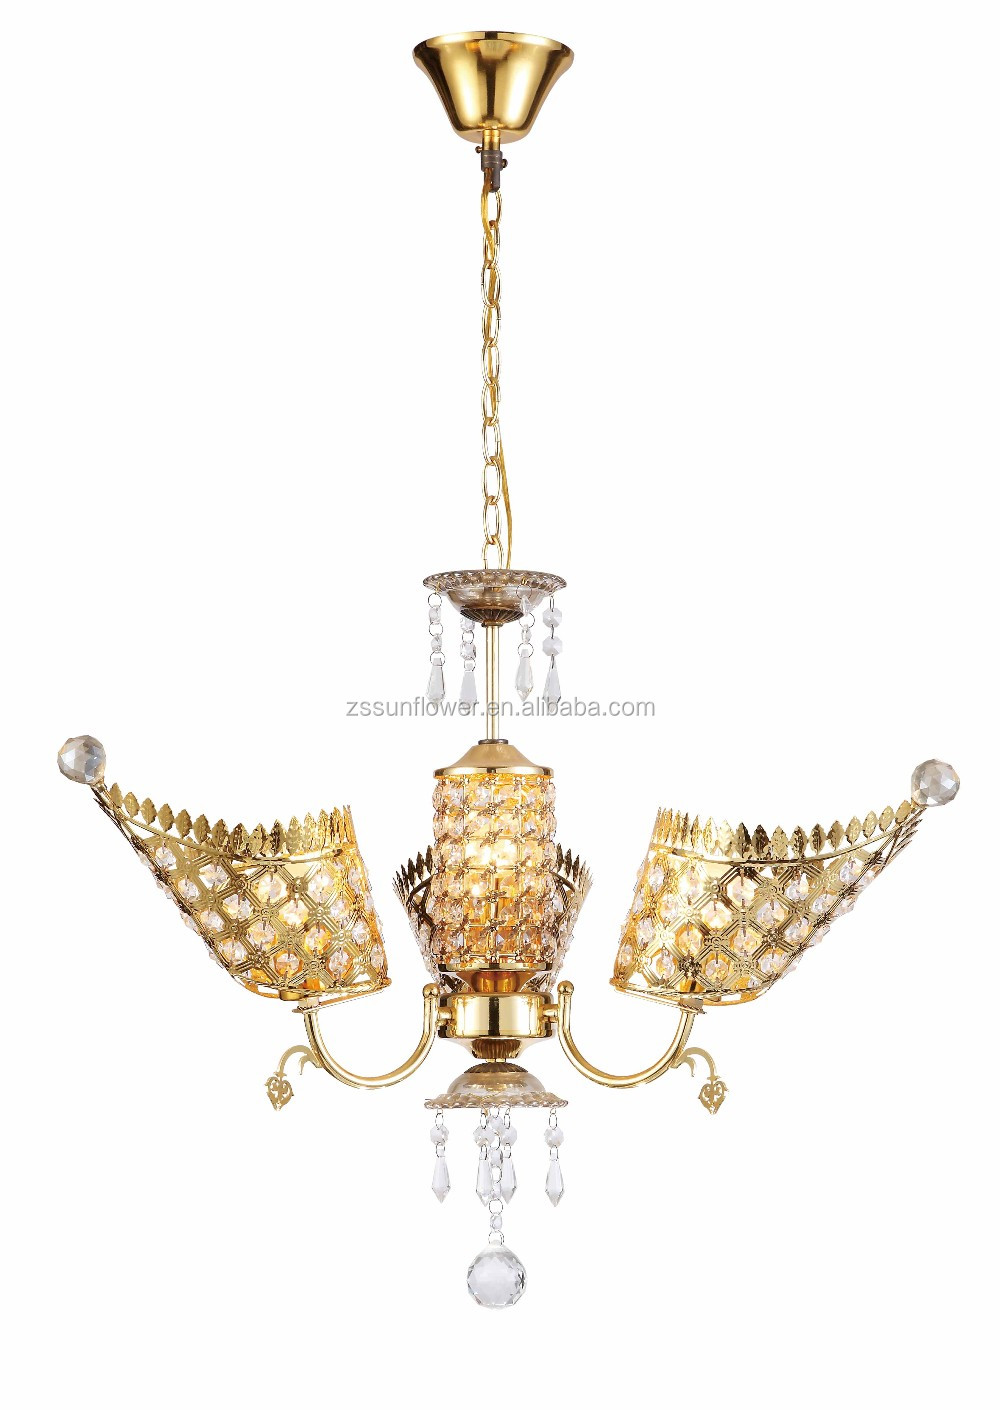 Modern hotel chandelier lighting crystal pendant lamp